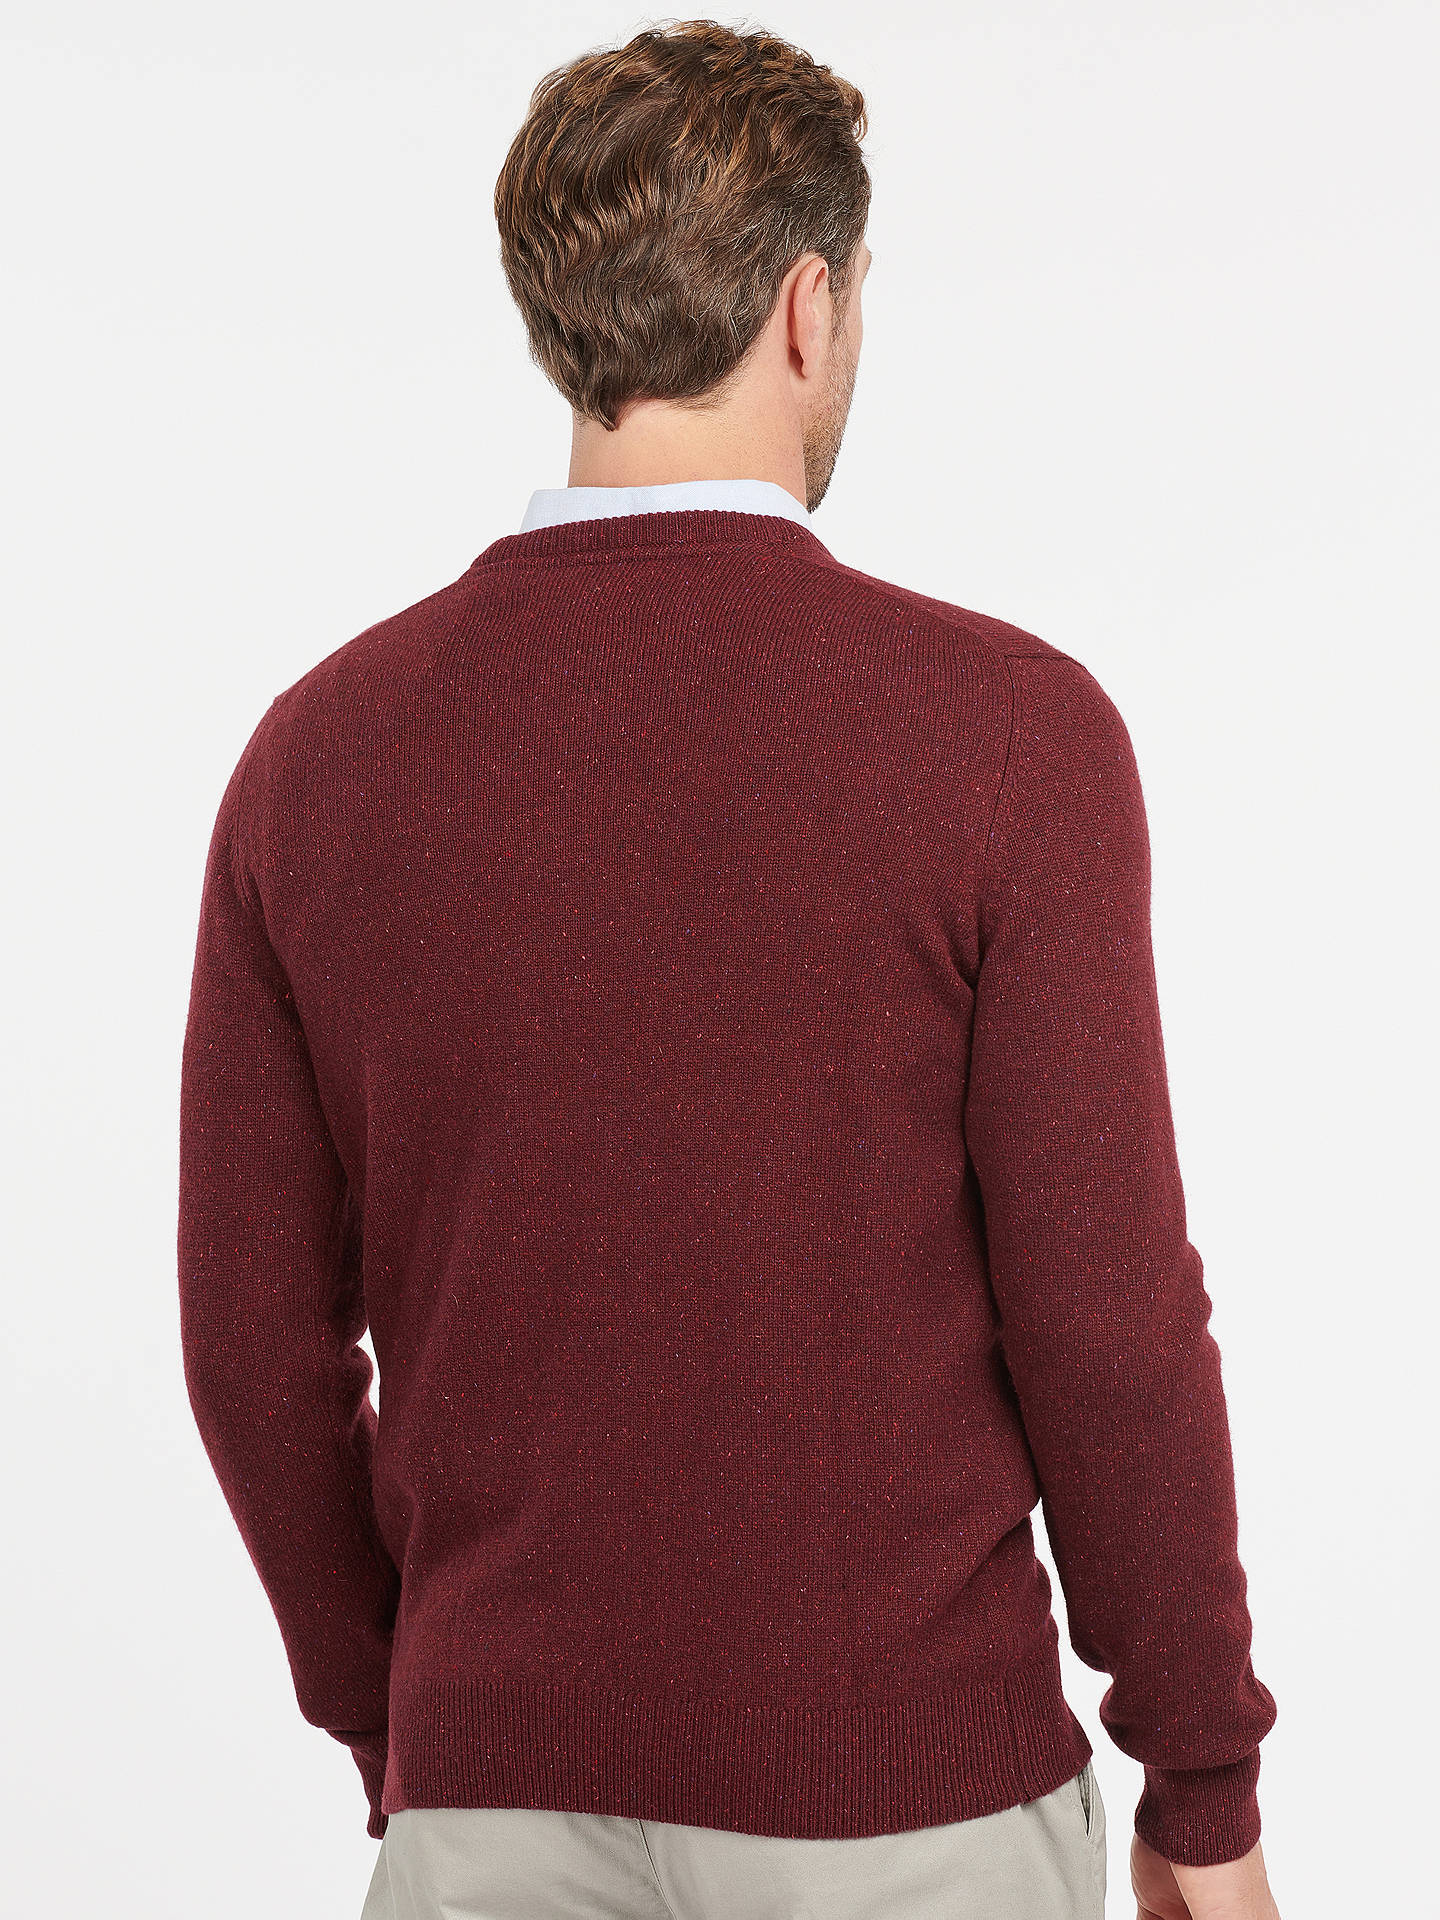 BuyBarbour Tisbury Lambswool Crew Neck Jumper, Ruby, S Online at johnlewis.com